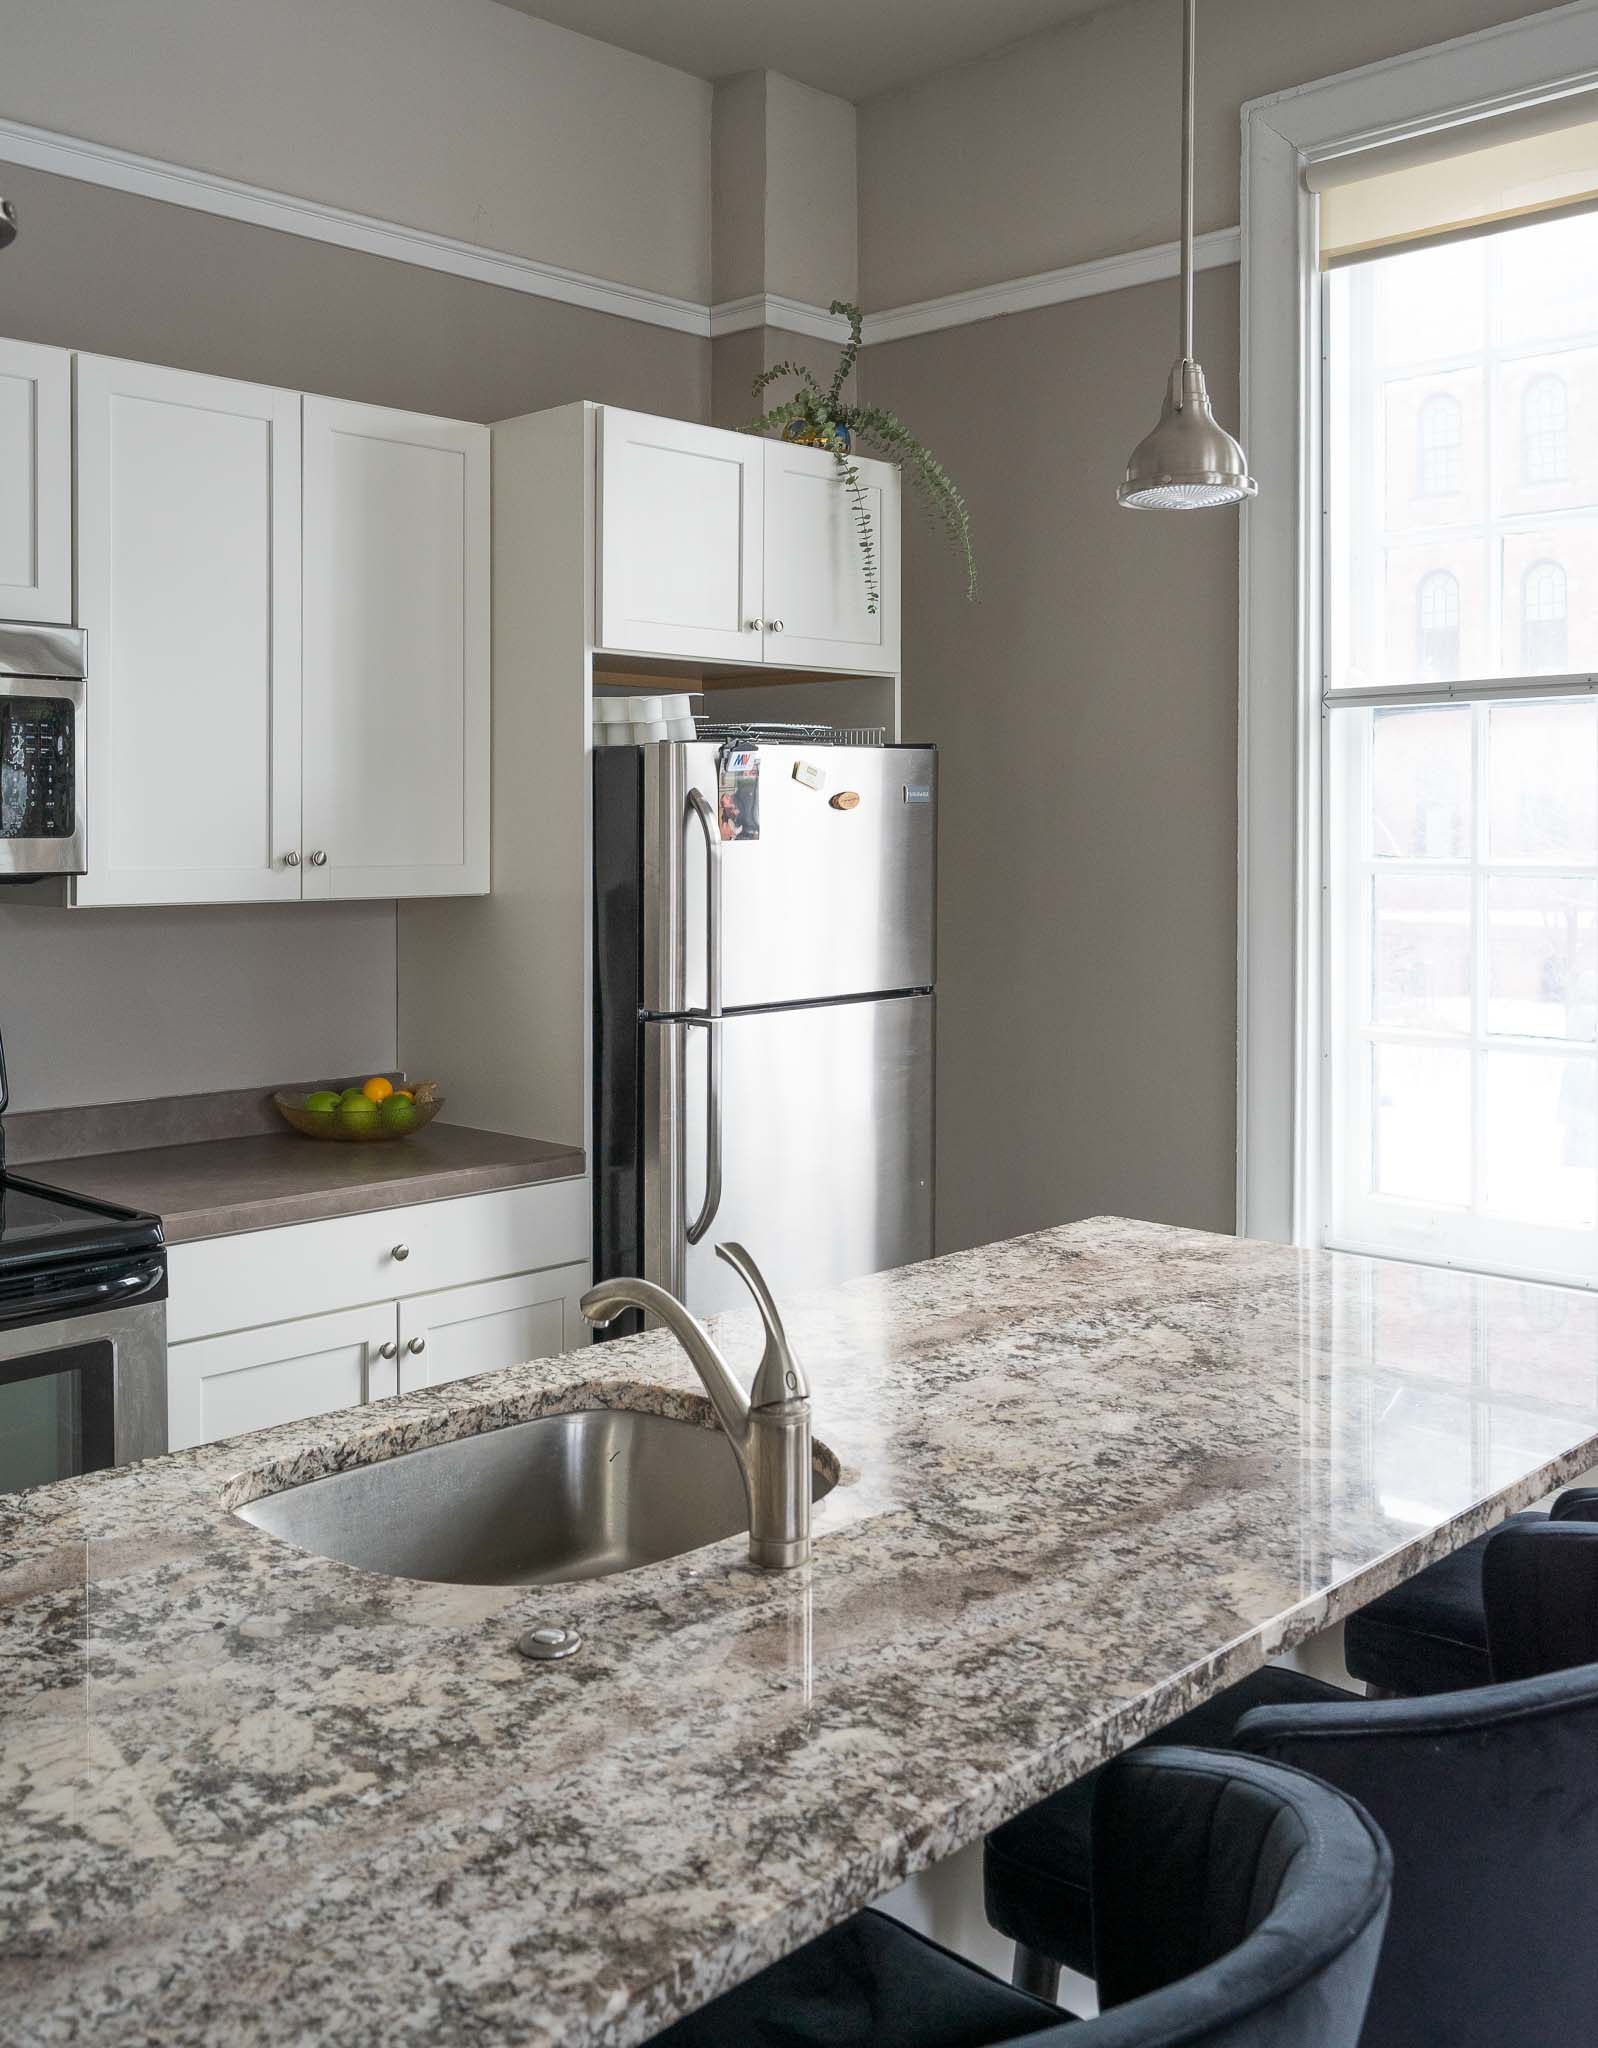 Kitchen at the 300 Alexander Apartments in Rochester, New York